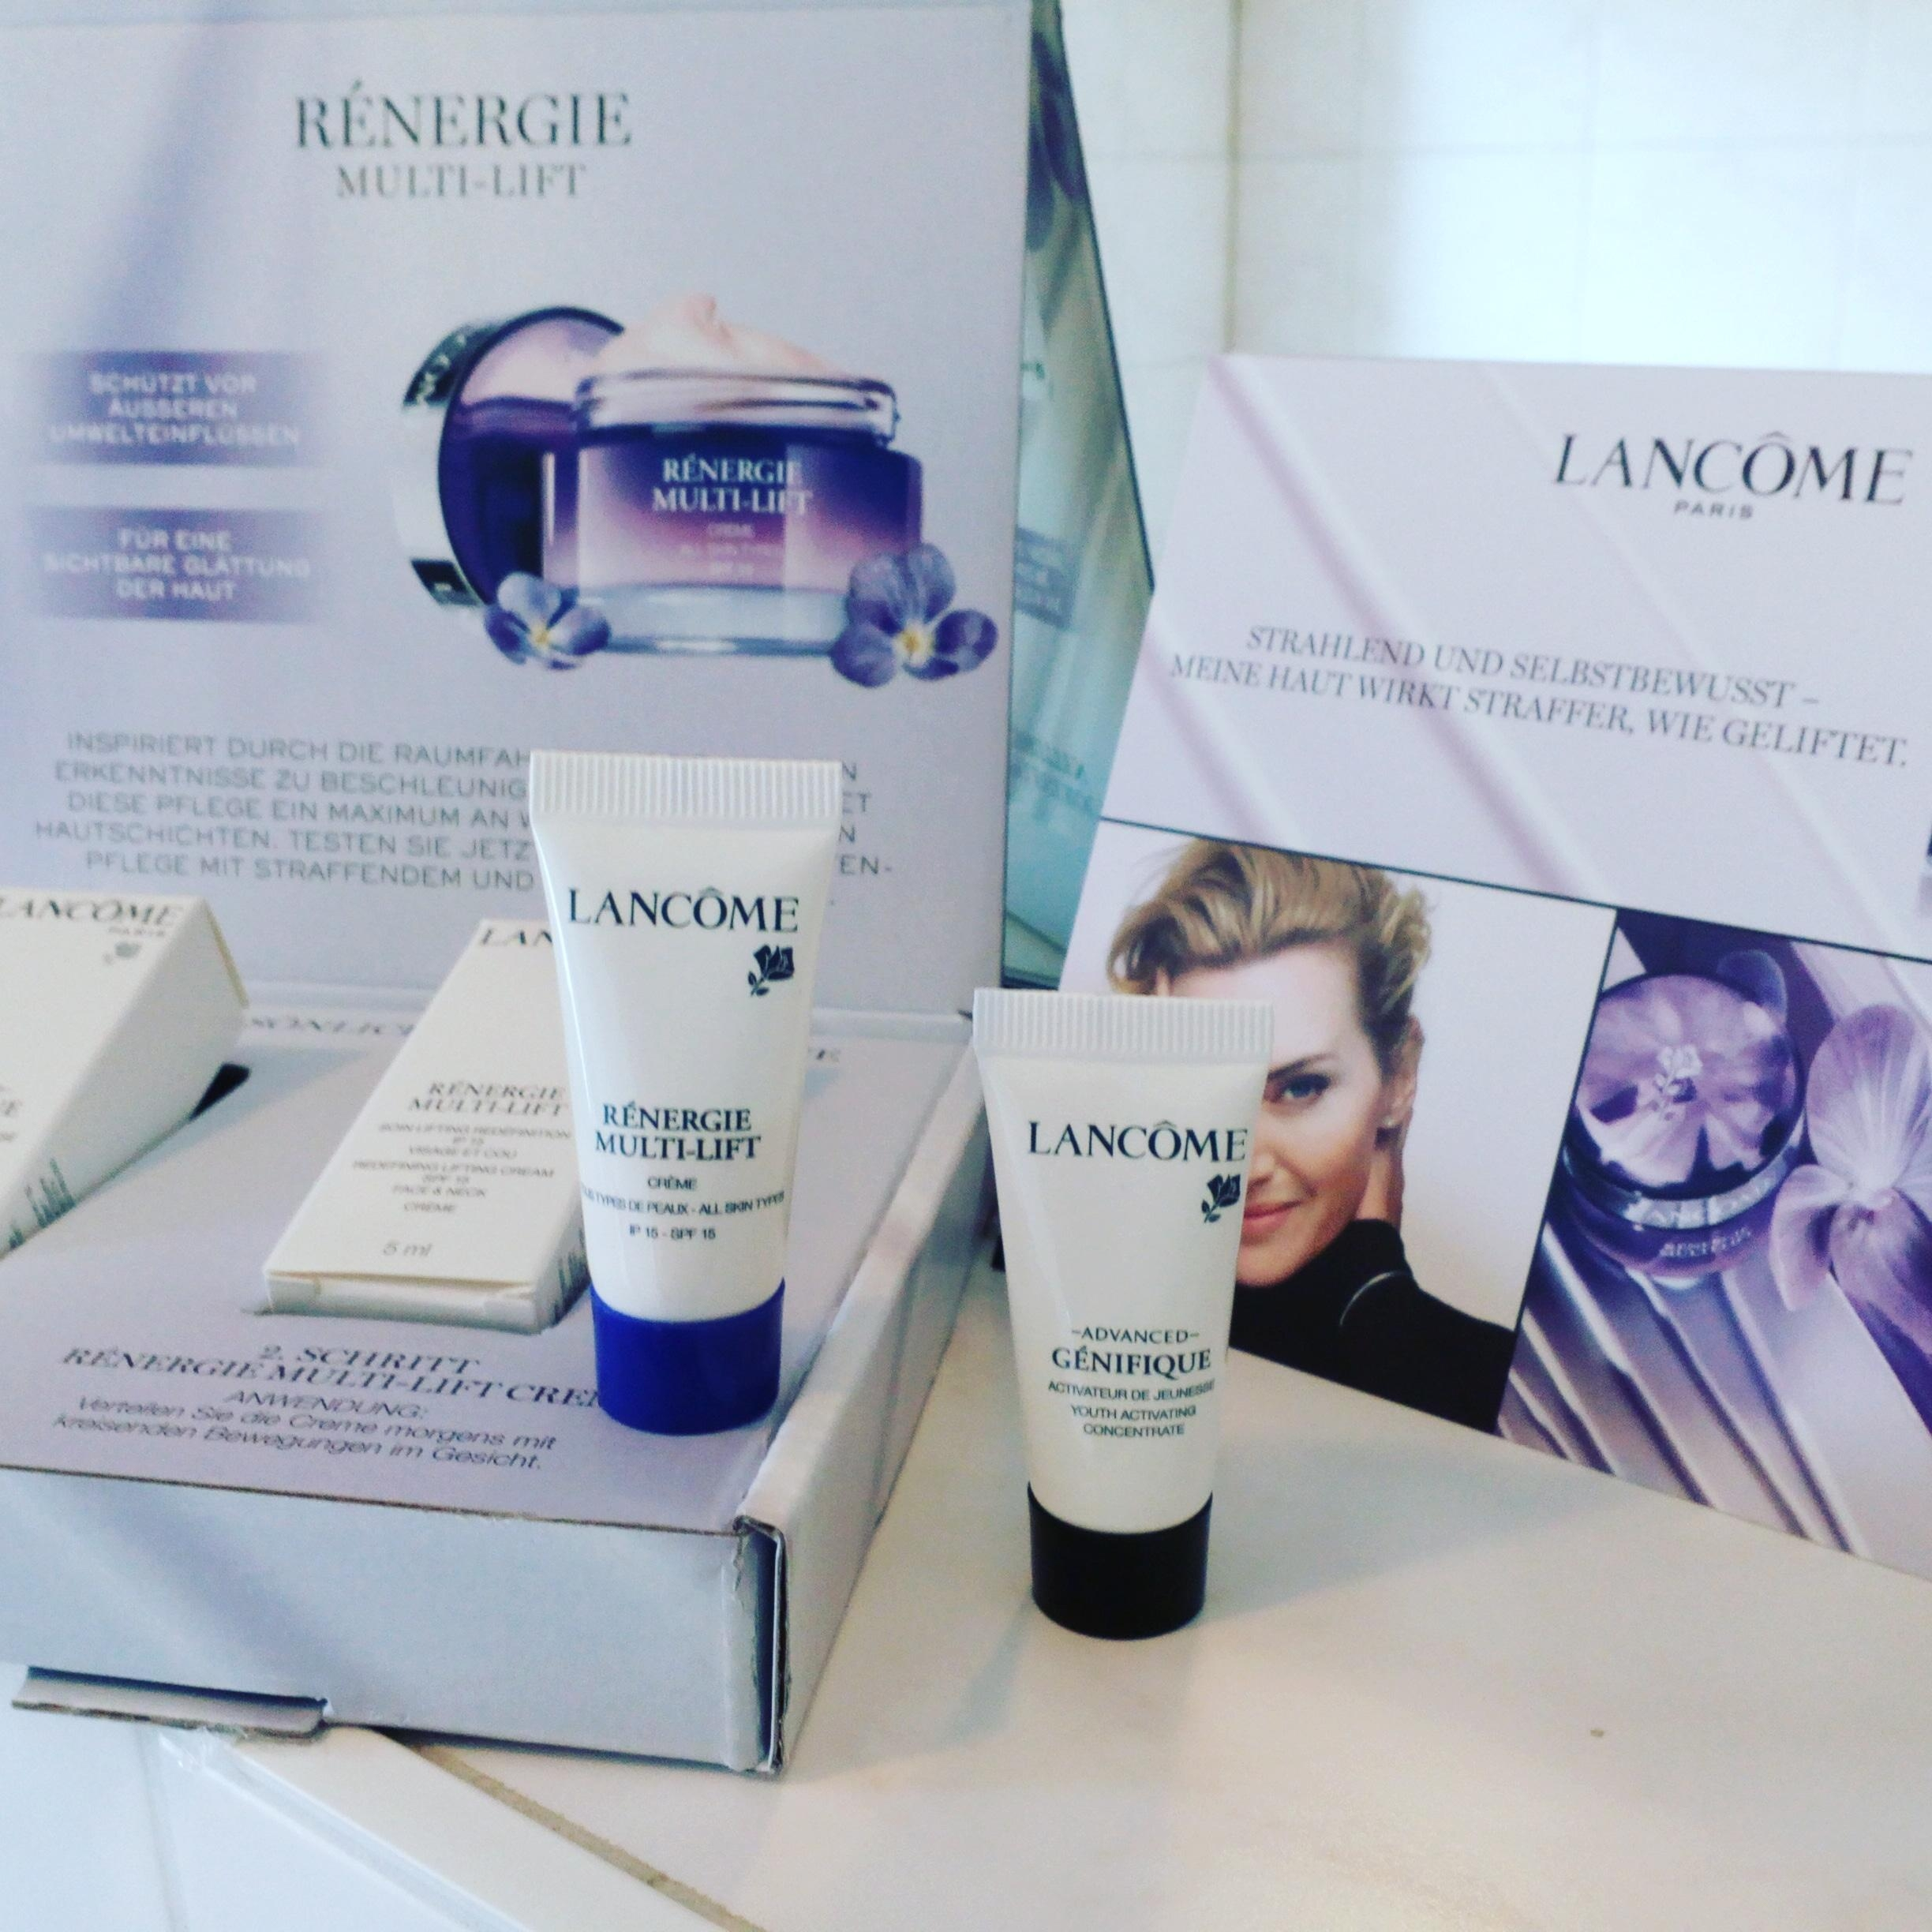 #Lancome#Beauty#Kosmetic#Lifting#Antiagepflege#